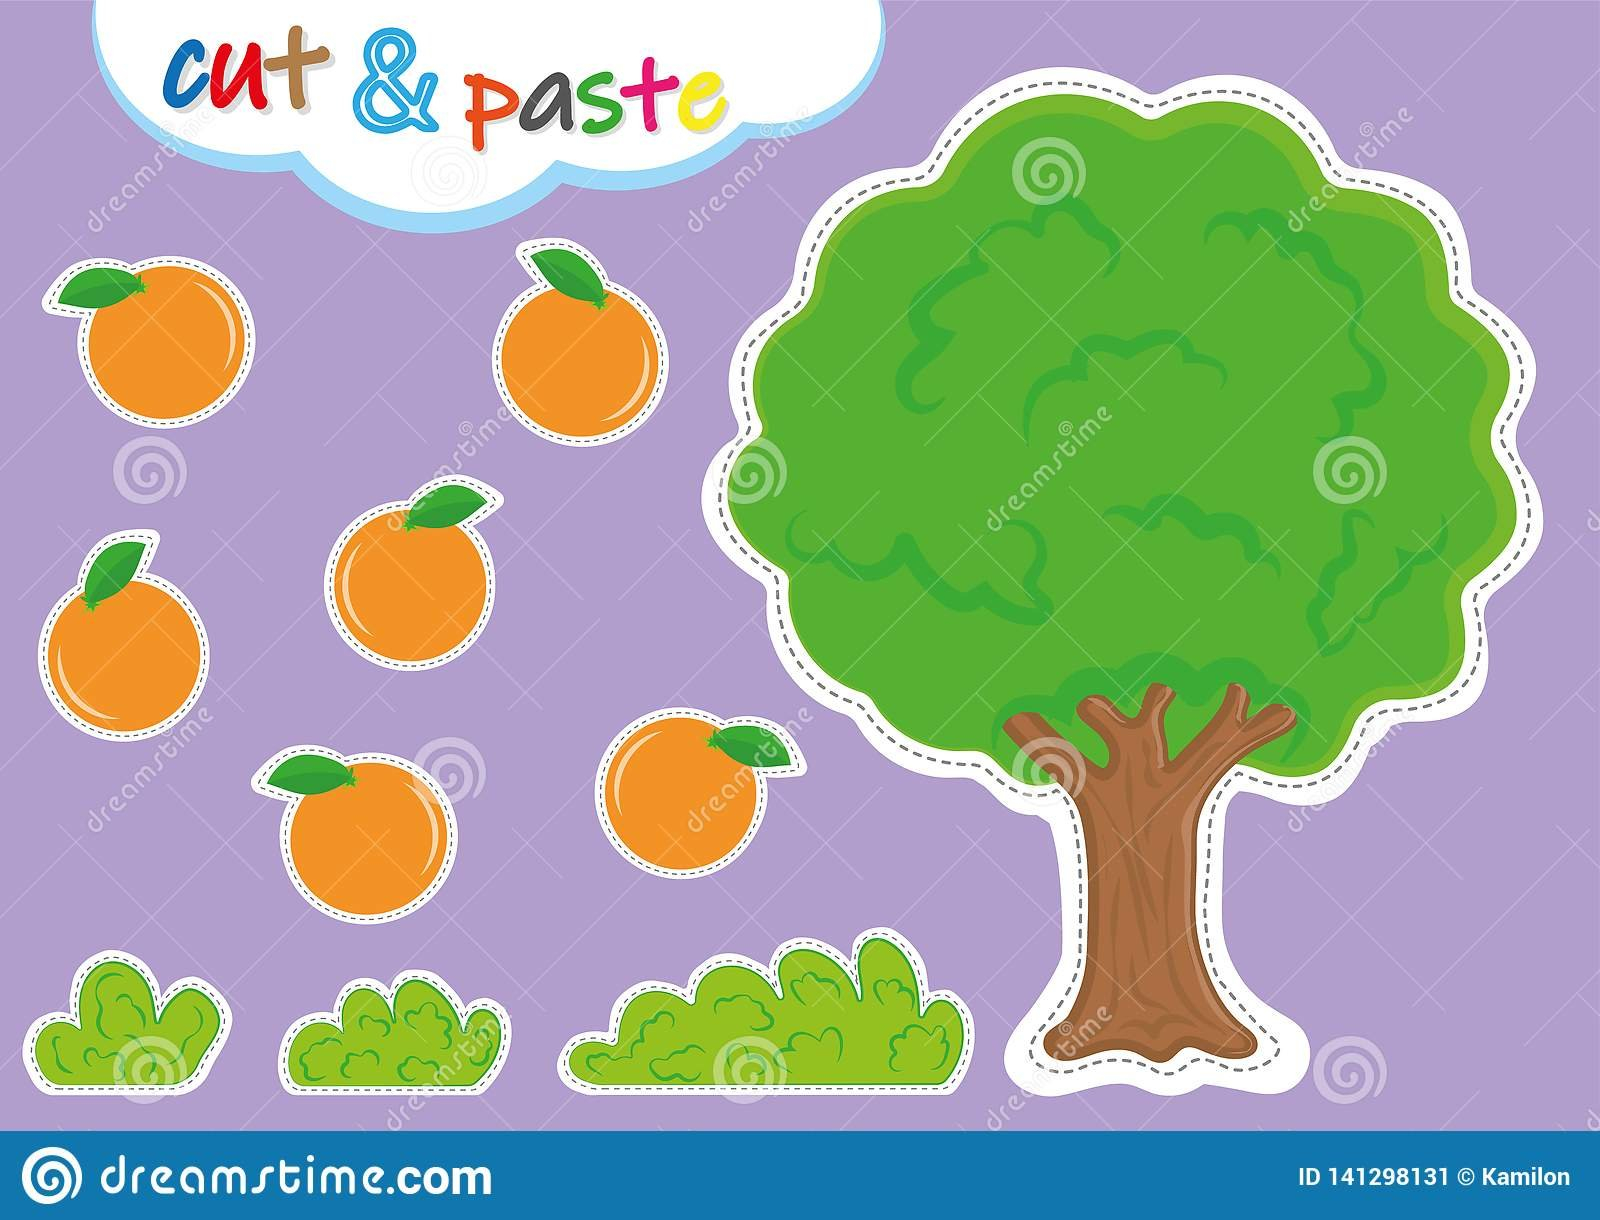 Cut And Paste Activities For Kindergarten Preschool Cutting And Or Cut And Paste Worksheets For Kindergarten